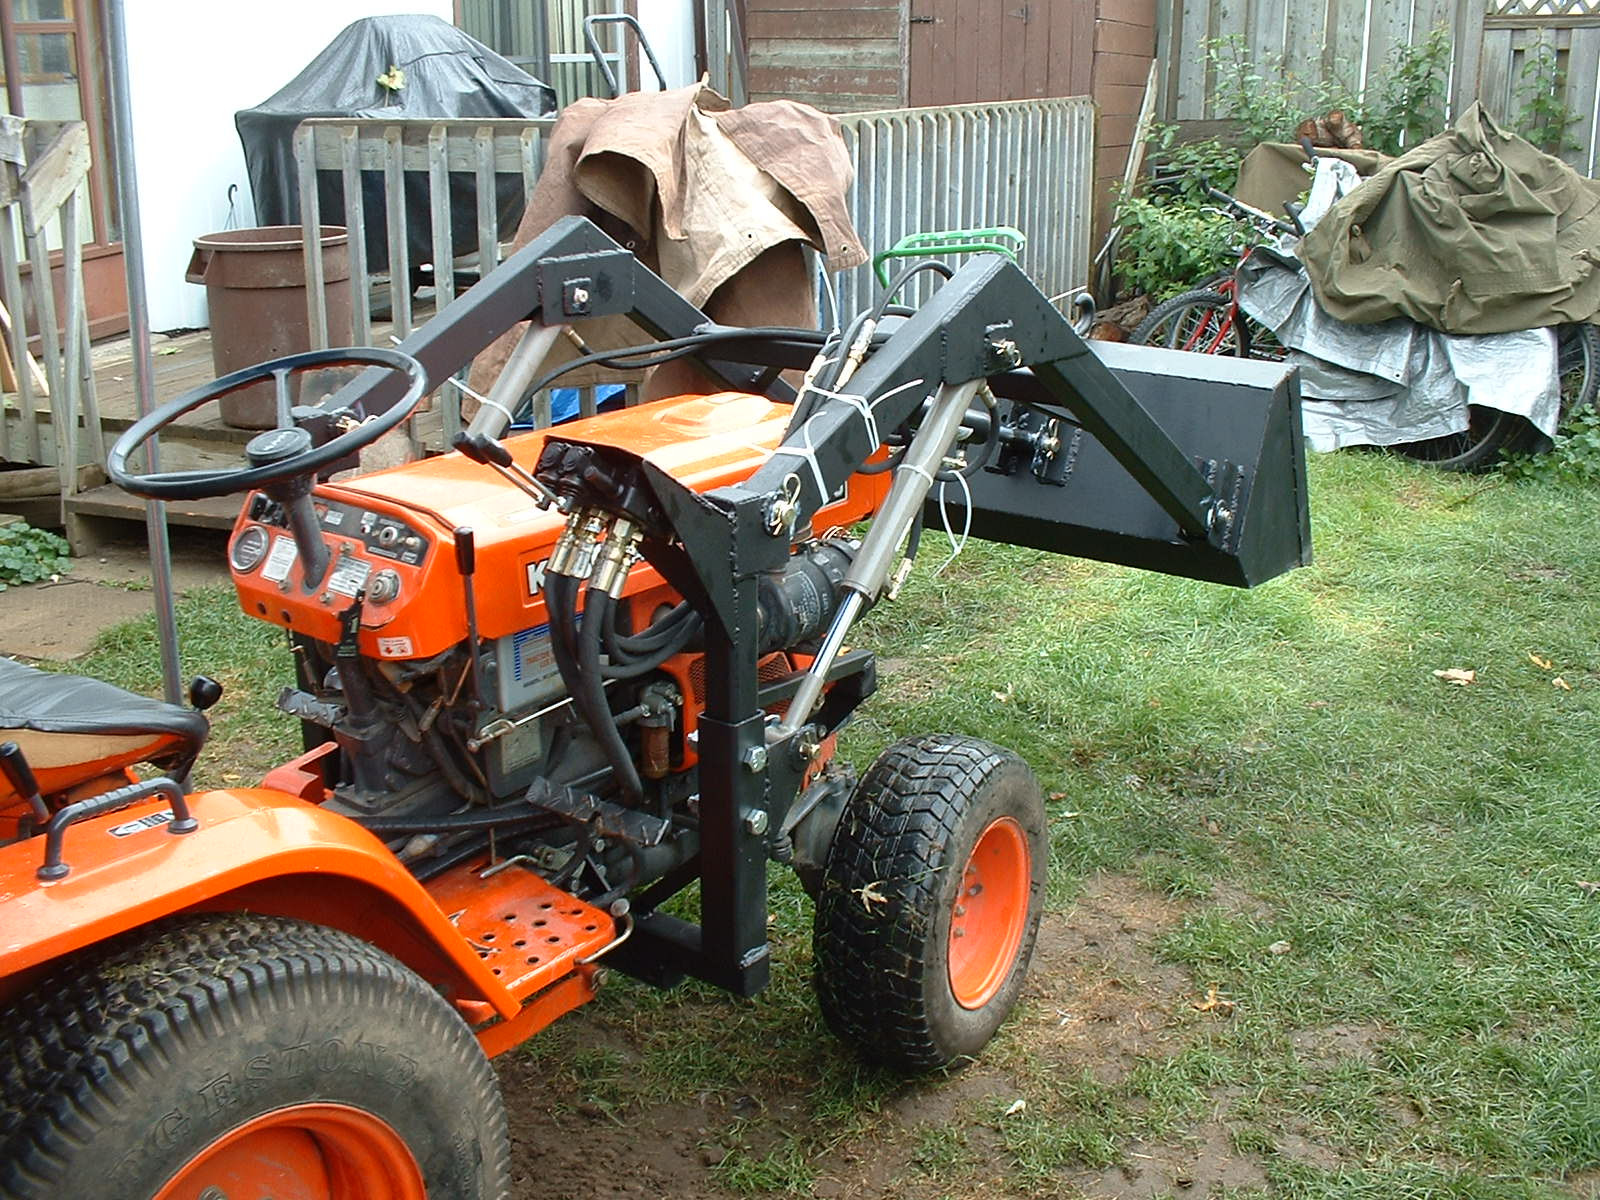 Best ideas about DIY Front End Loader Kit . Save or Pin Diy Garden Tractor Front End Loader Now.